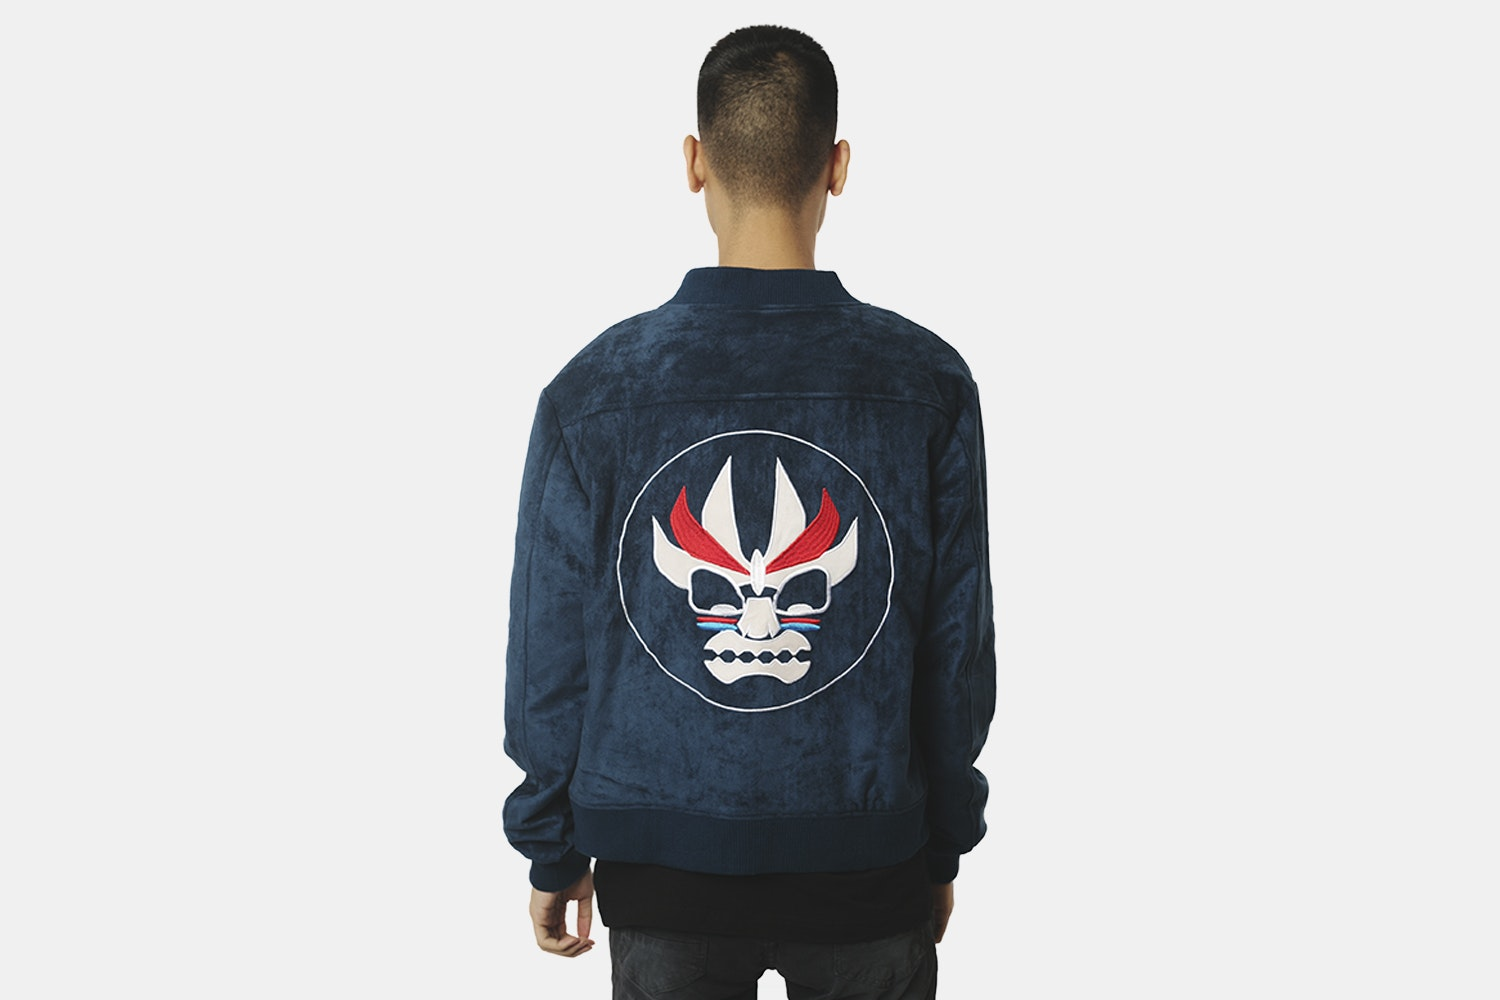 Aku Bomber Jacket (with back embroidery) - Navy  (+ $20)